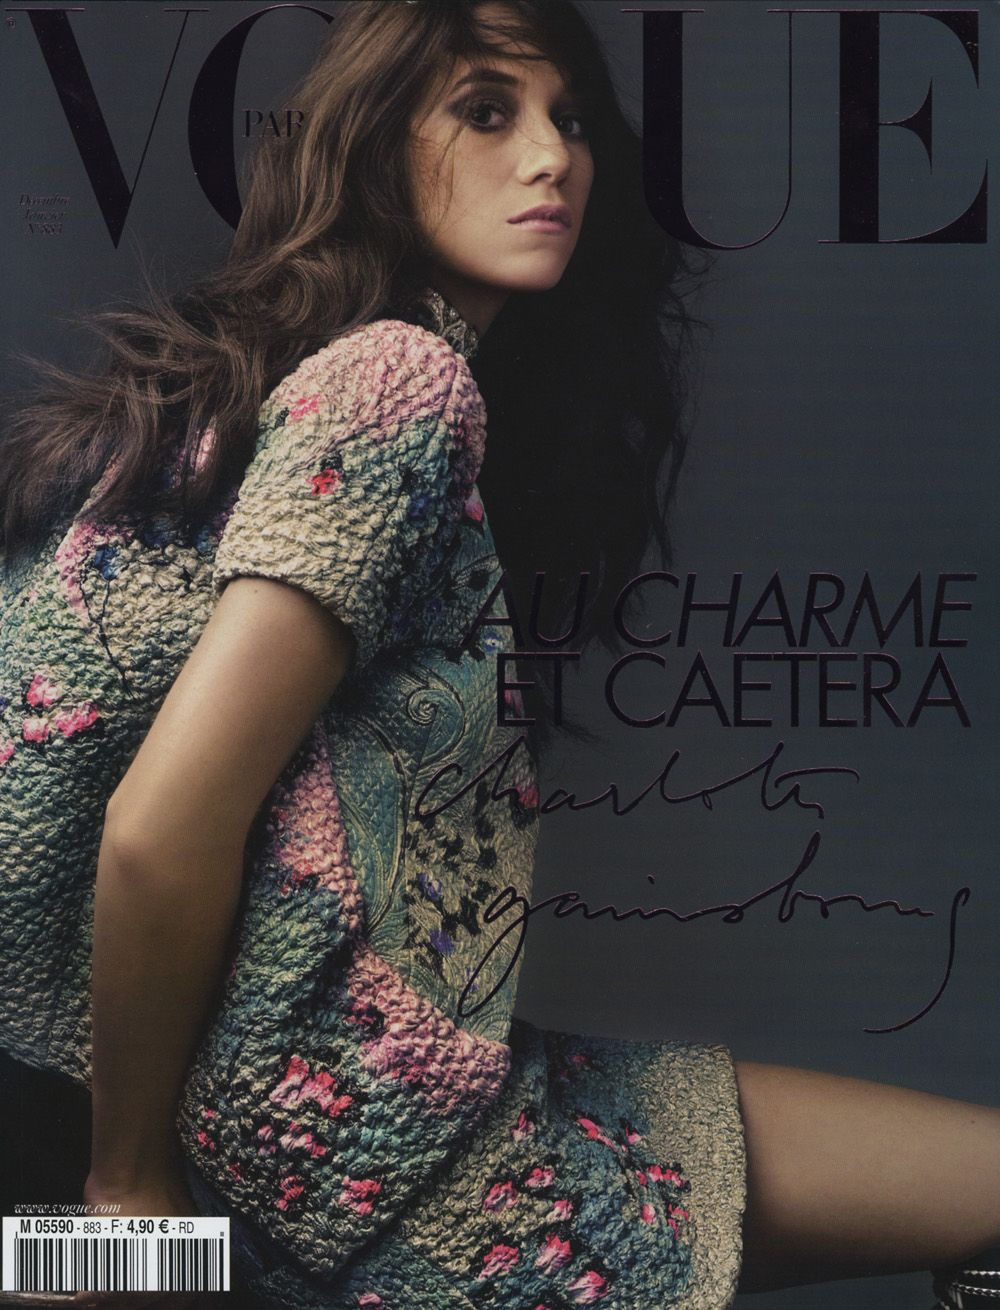 French Vogue guest editor charlotte Gainsbourg BEST ISSUE EVER, like reading her personal diary she really let the reader in to her world picture via Milly Fell Into The Wardrobe: Plus ça change, plus c'est la même chose